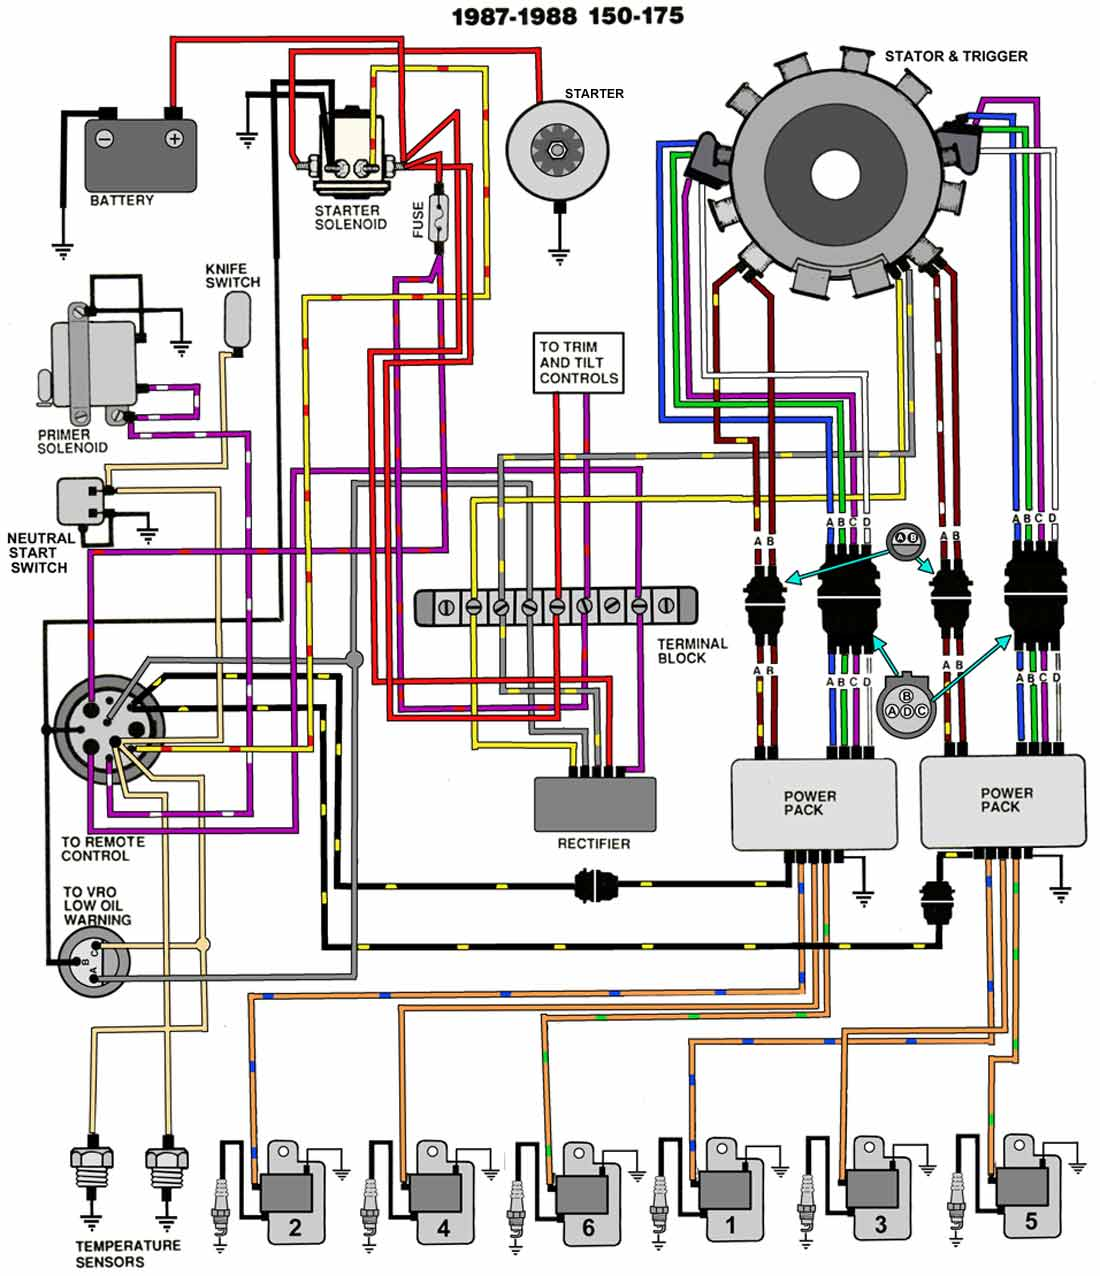 87_88_150_175 yamaha outboard motor wiring diagrams the wiring diagram  at nearapp.co